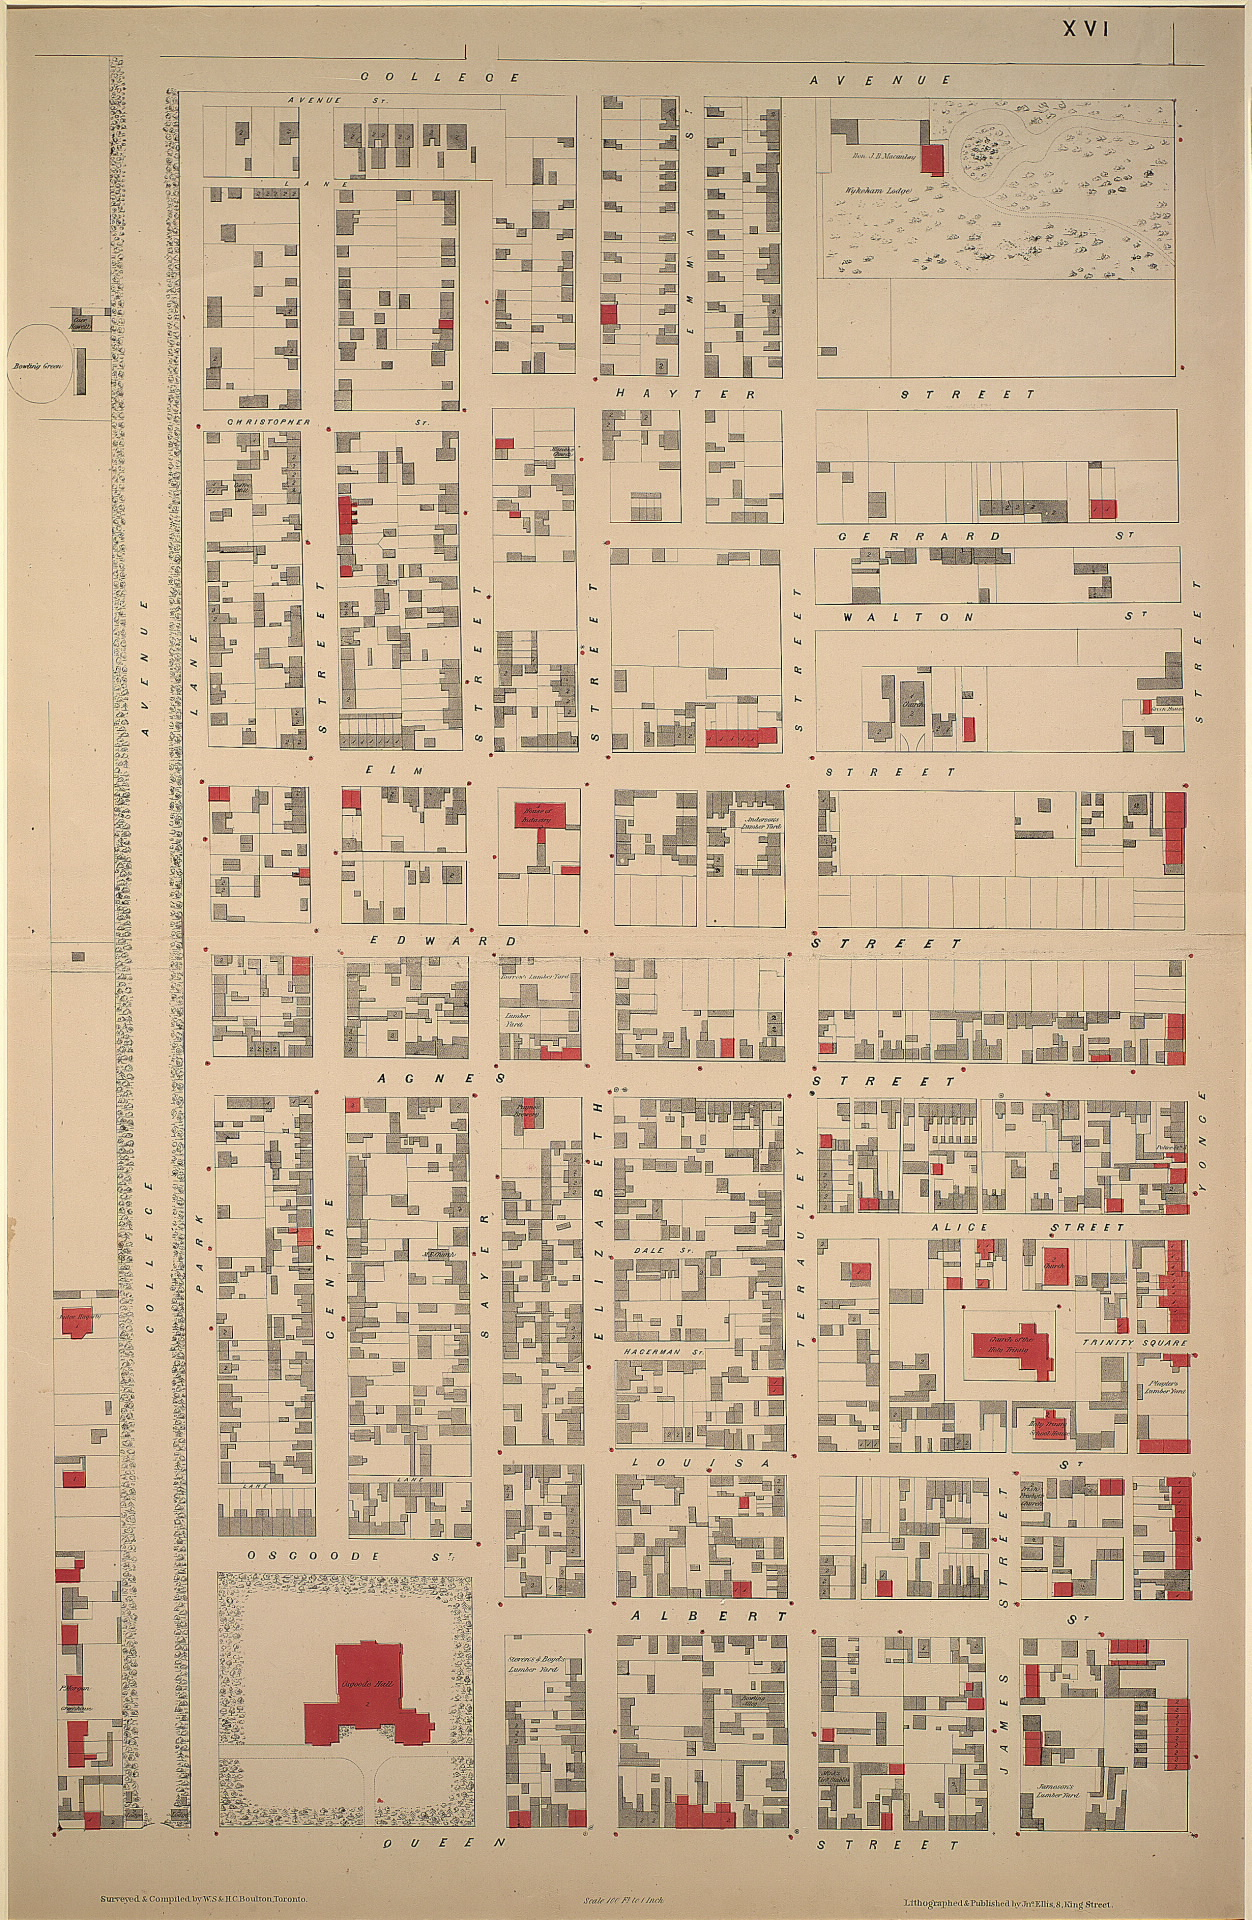 Osgoode Hall 1858 Boulton Atlas